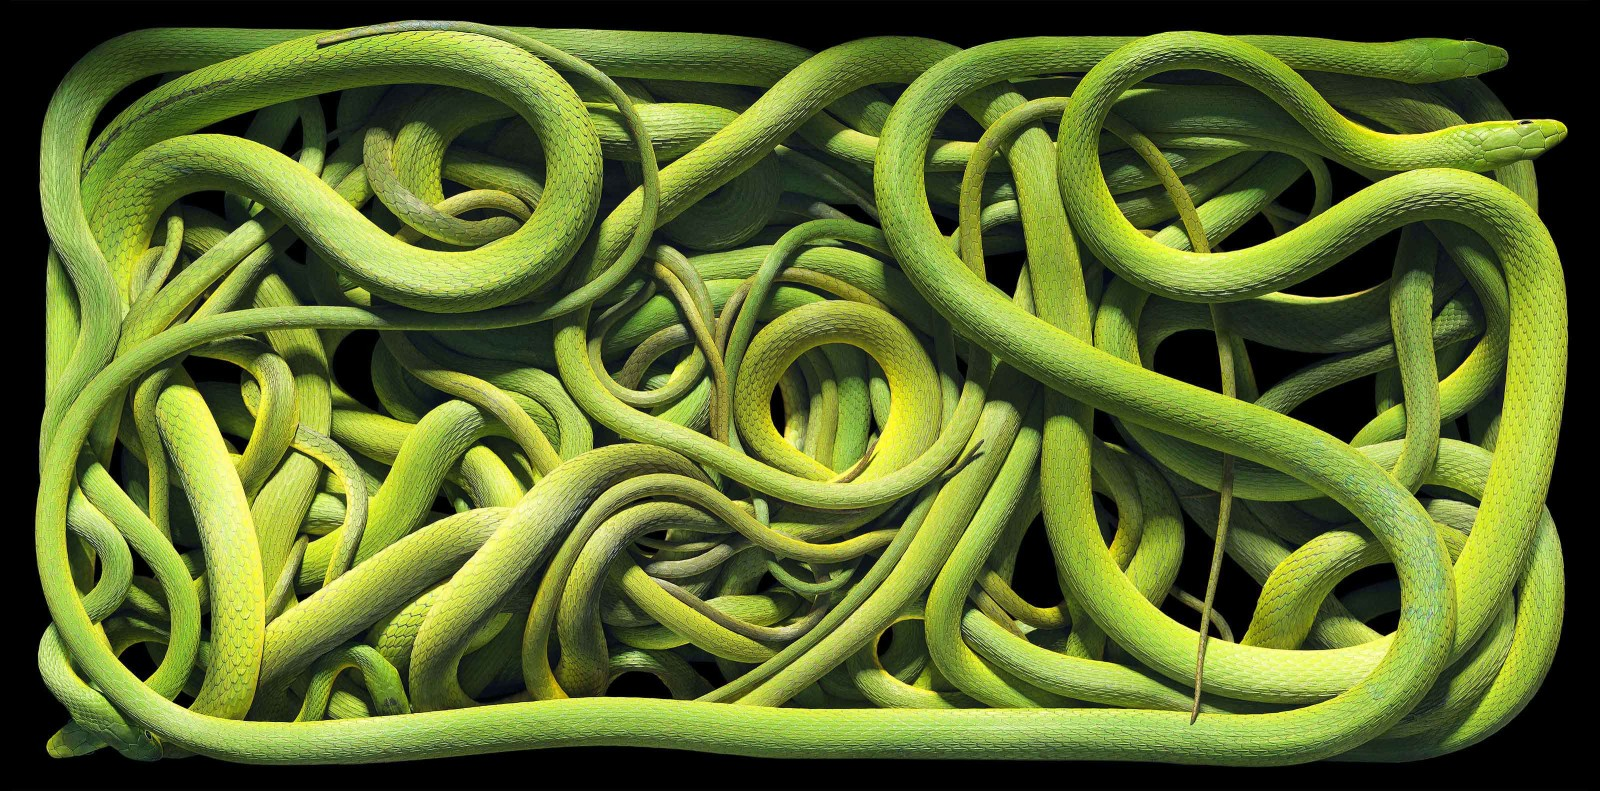 green-snakes1-1600x791